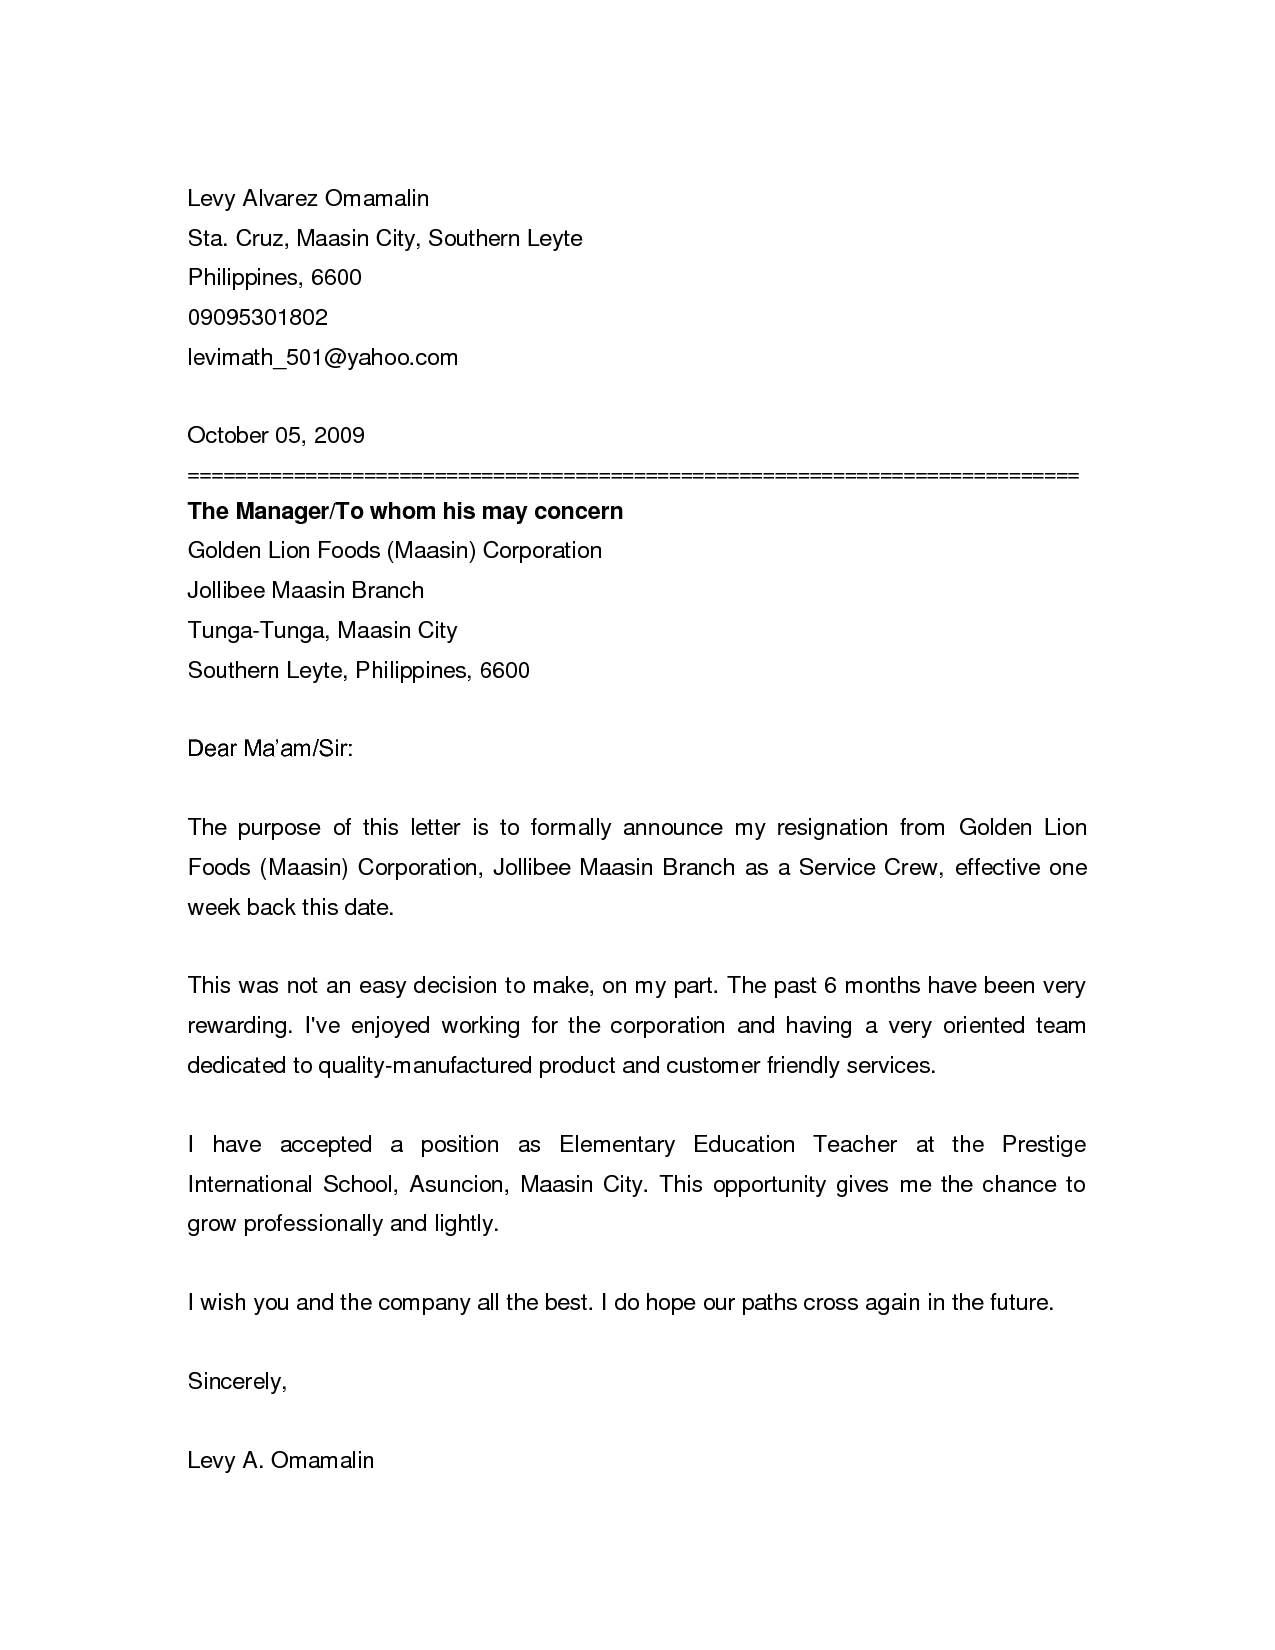 Resing Letter Best Ideas About Professional Resignation Letter